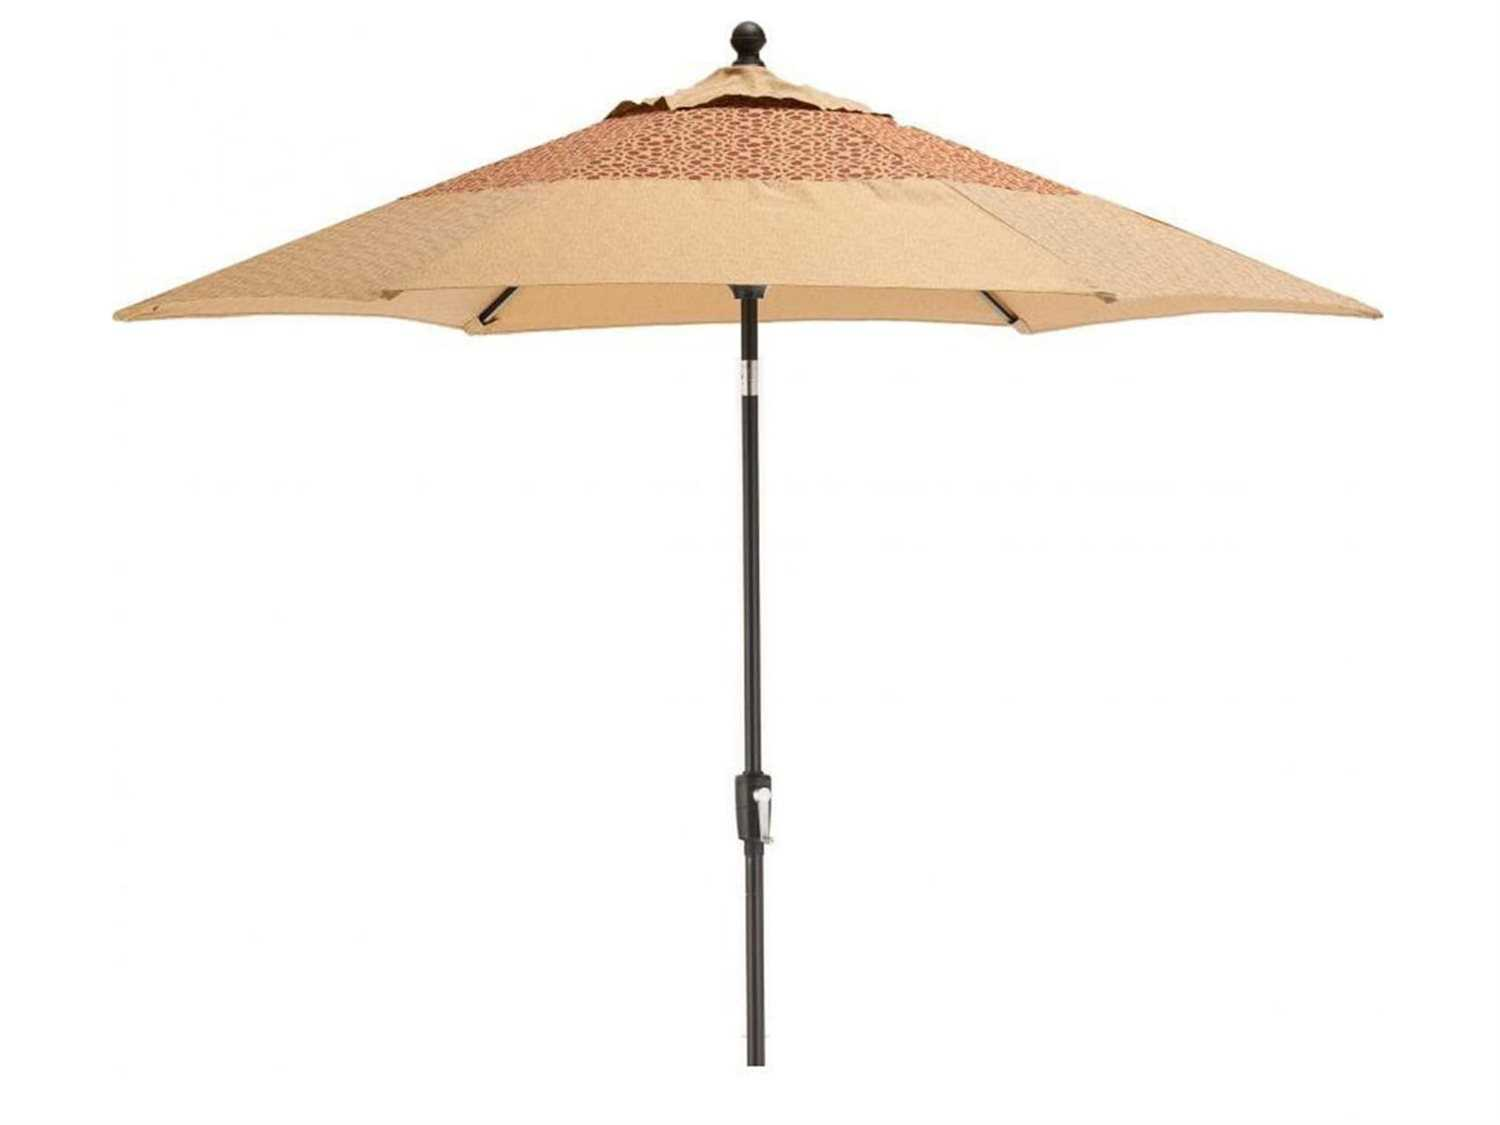 Agio heritage aluminum 9ft crank lift tilt market umbrella for Agio heritage chaise lounge